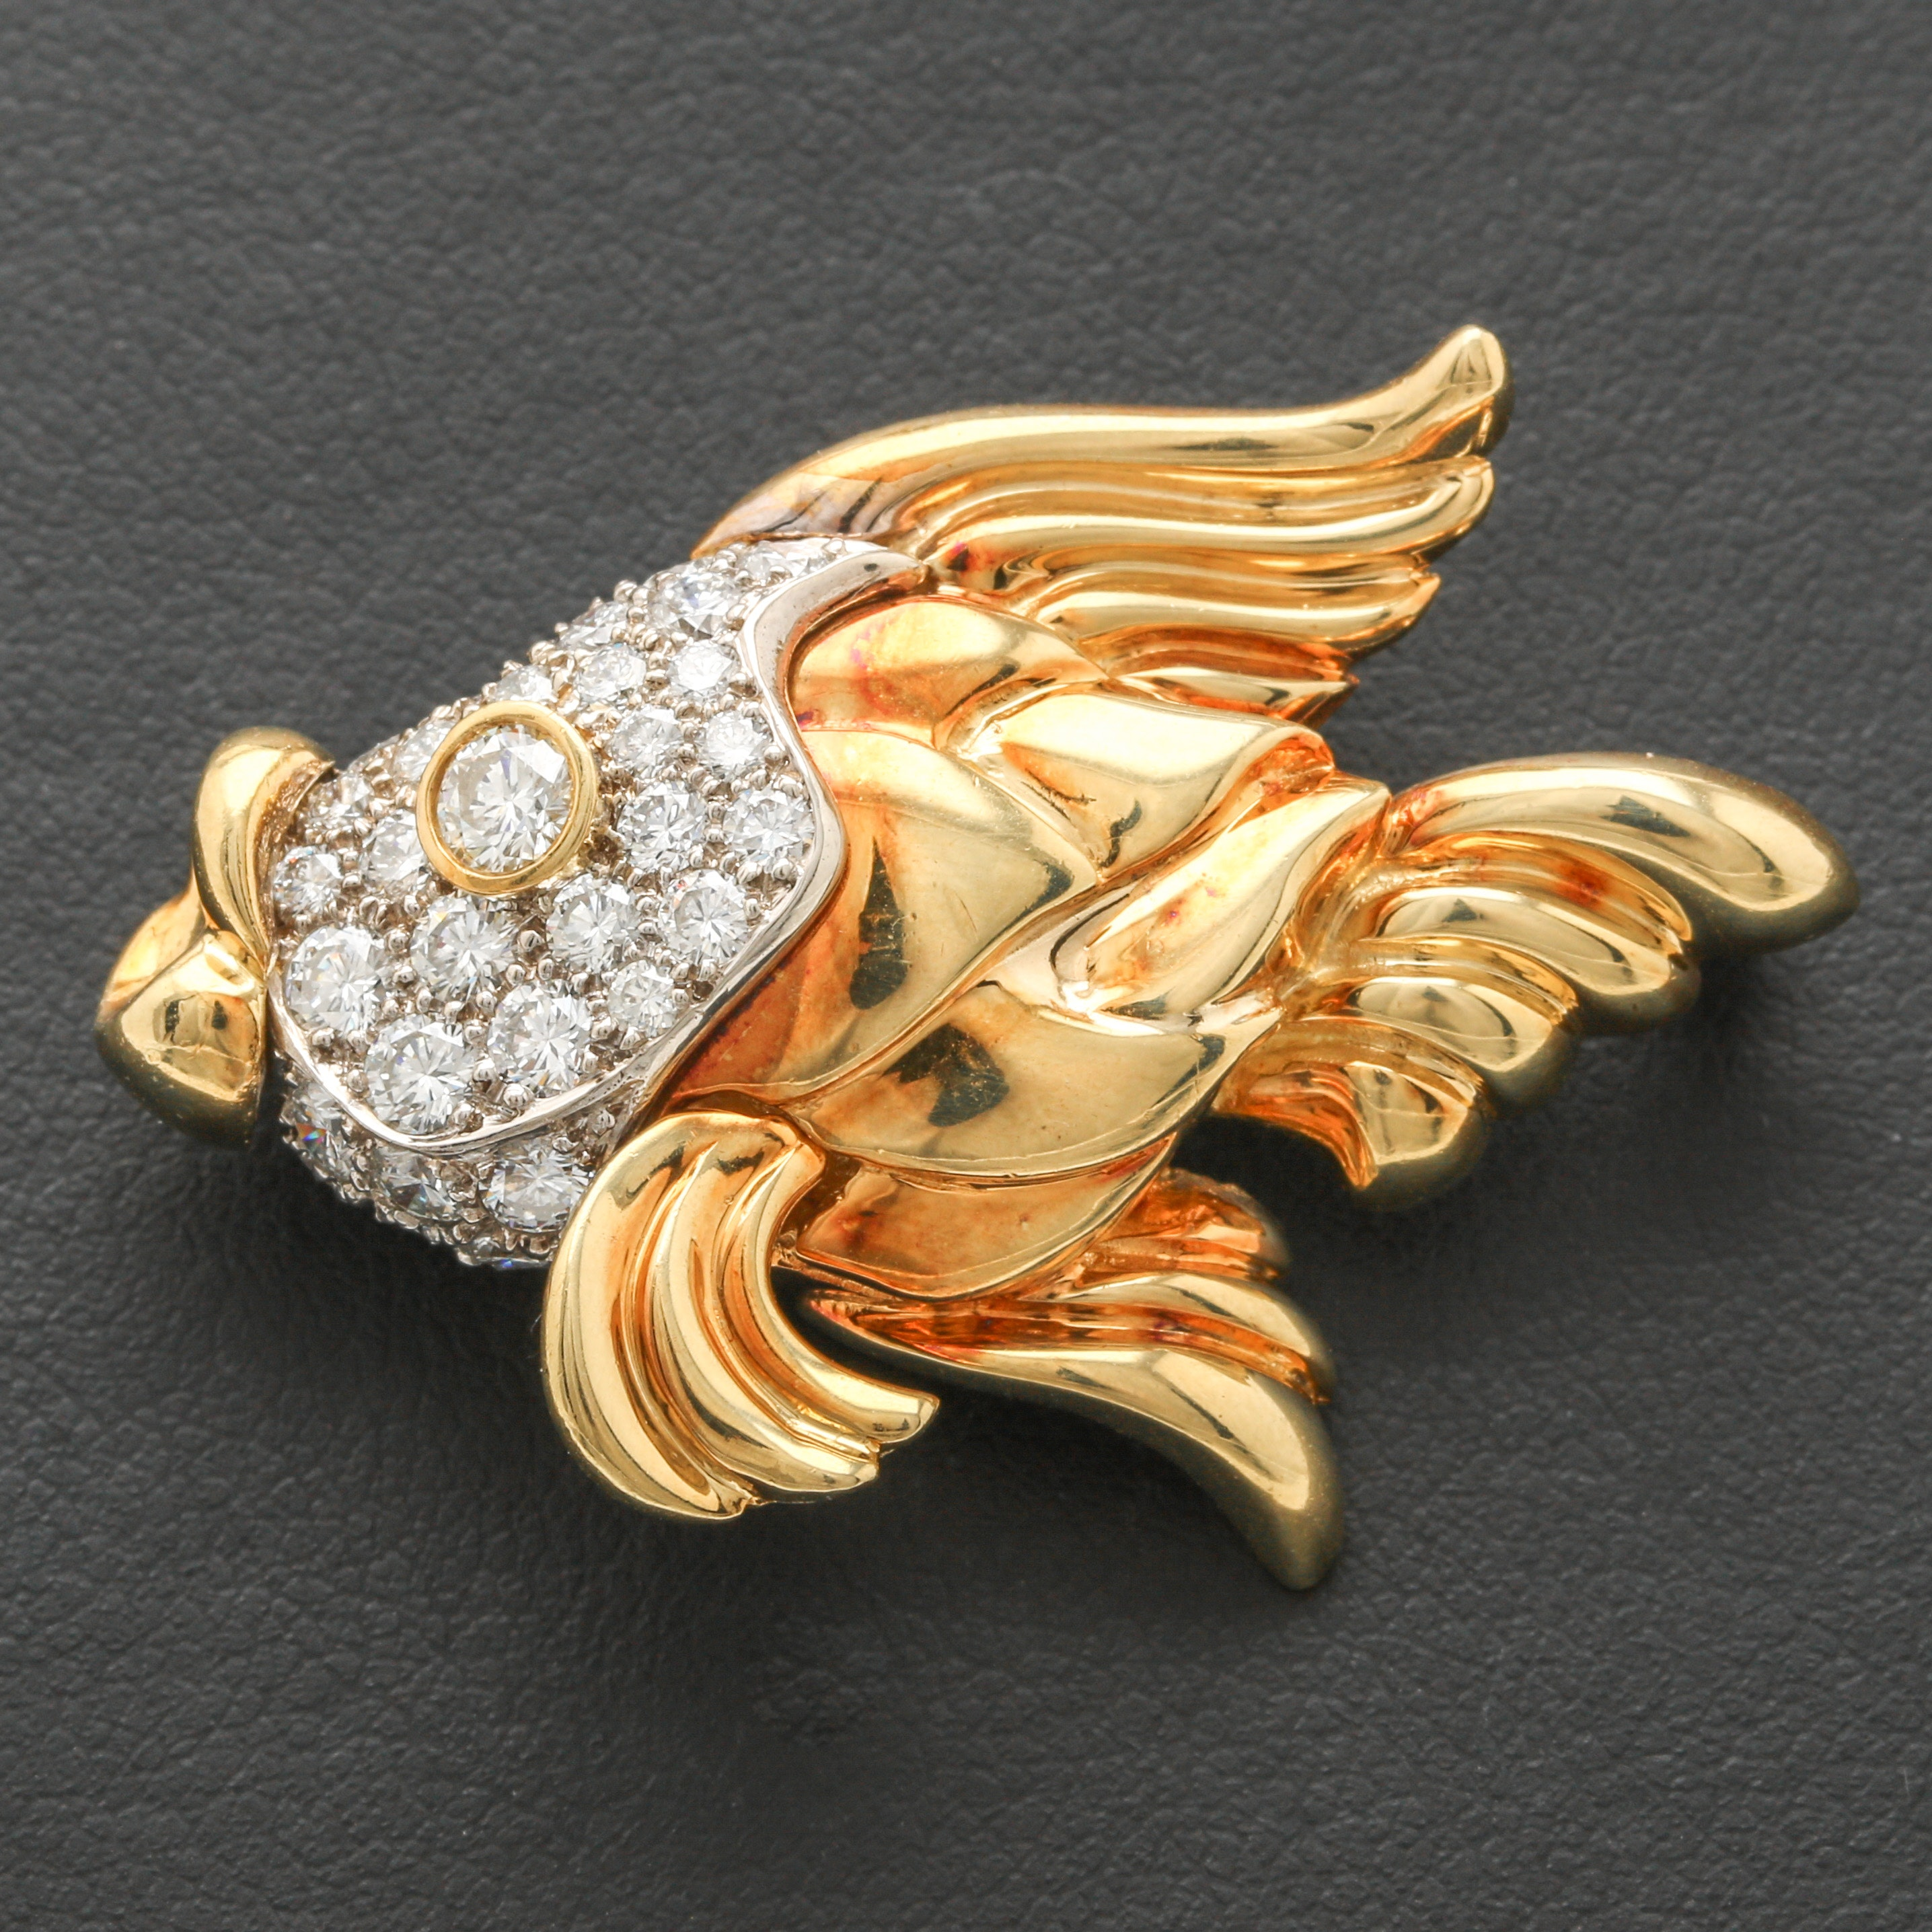 18K and 14K Yellow Gold 1.54 CTW Diamond Fish Brooch